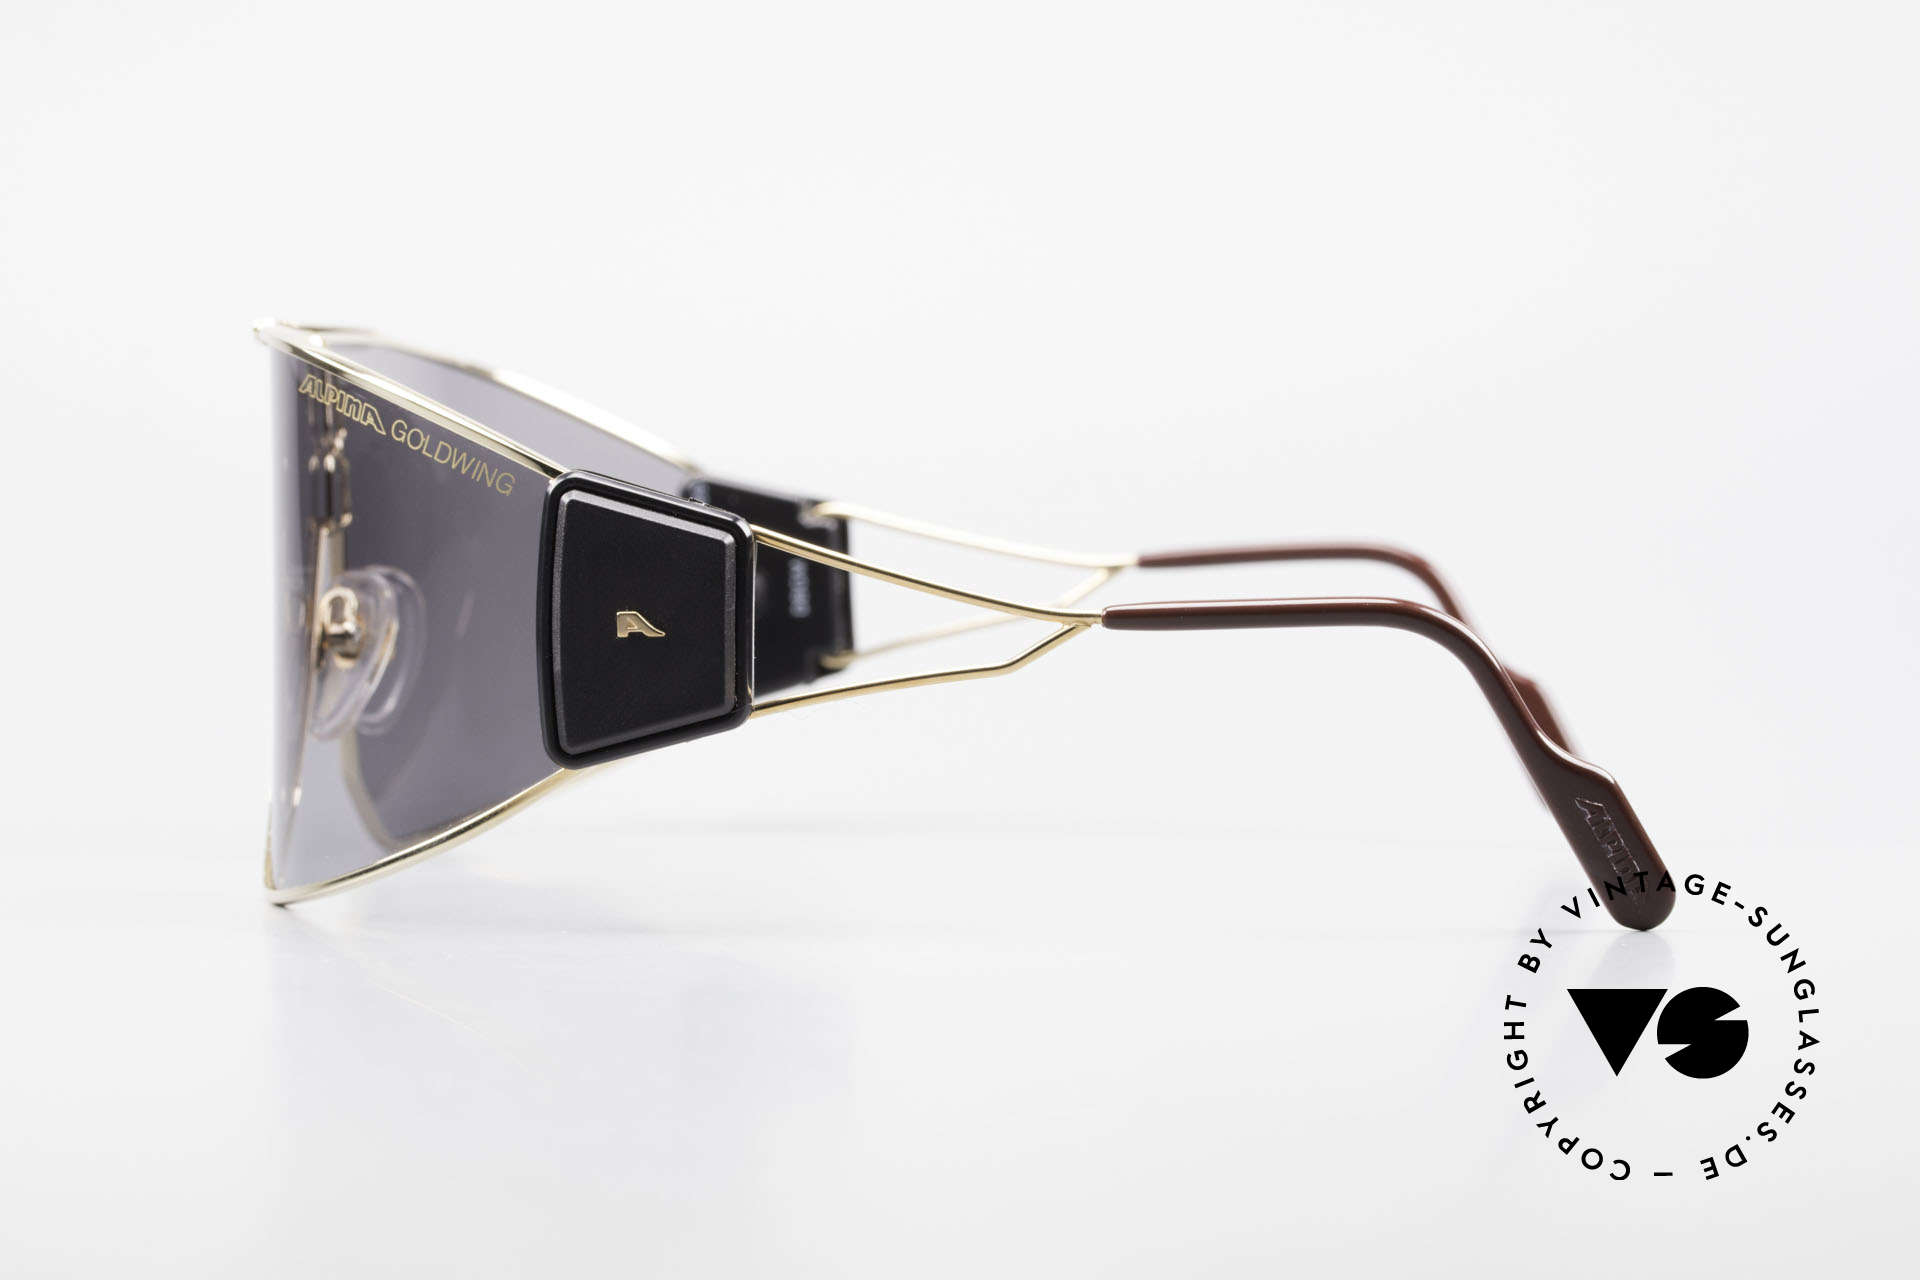 Alpina Goldwing Rare Celebrity Sunglasses 80's, almost impossible to get, today (a real museum piece), Made for Men and Women